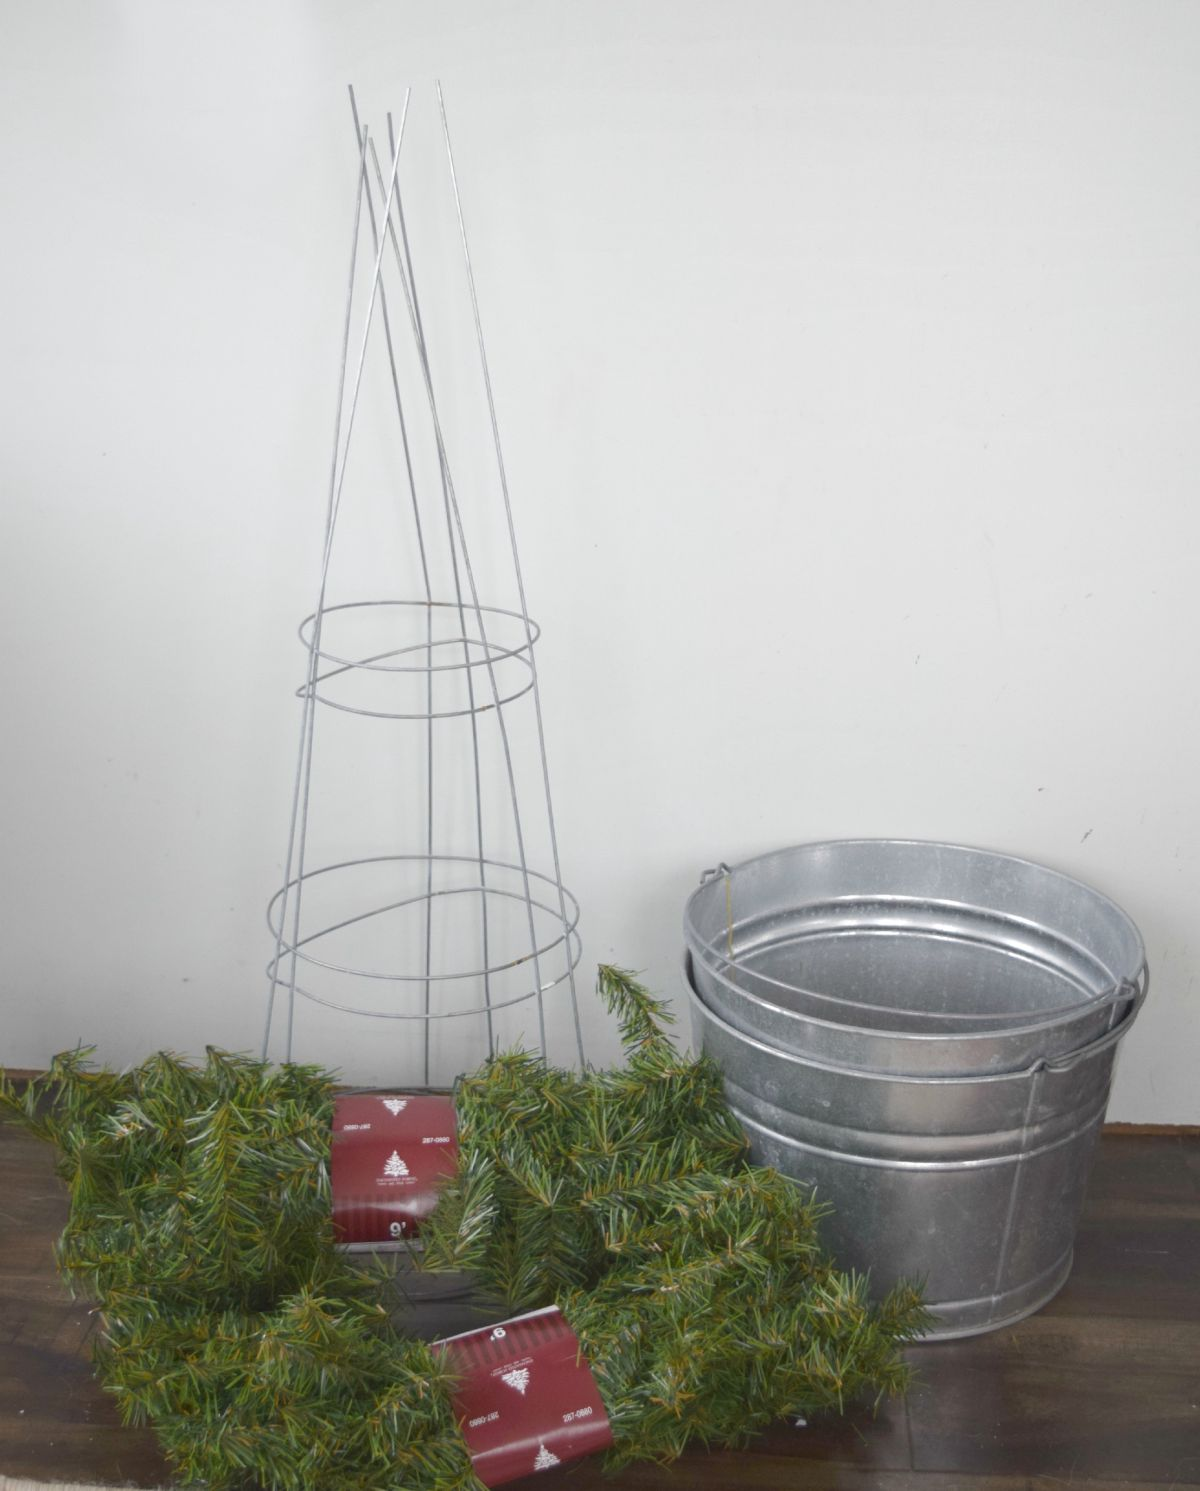 Materials to create Christmas topiary